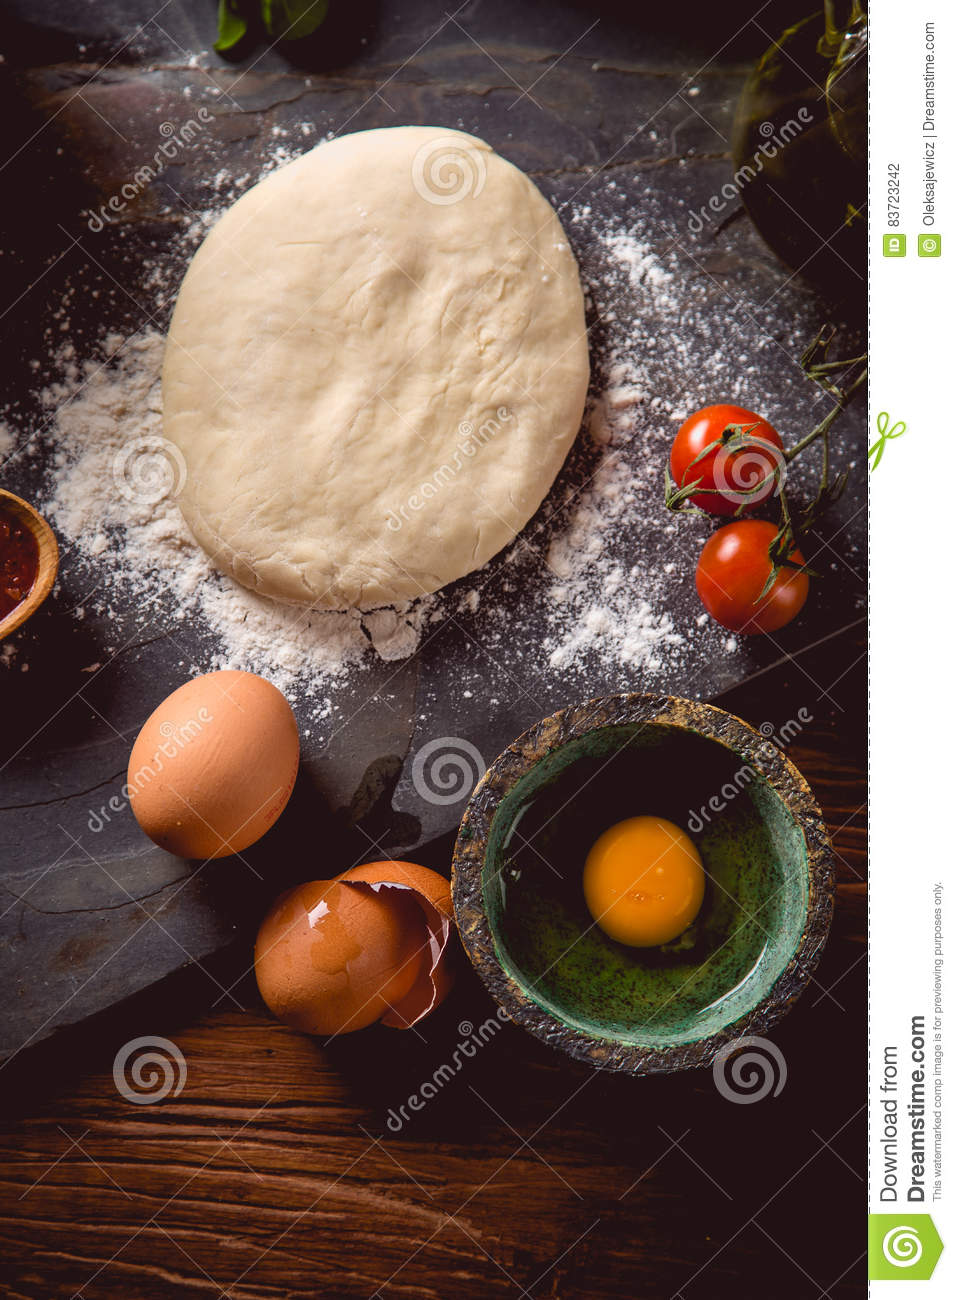 Dough With Flour On Wooden Table, Preparing Homemade Pizza Stock Photo